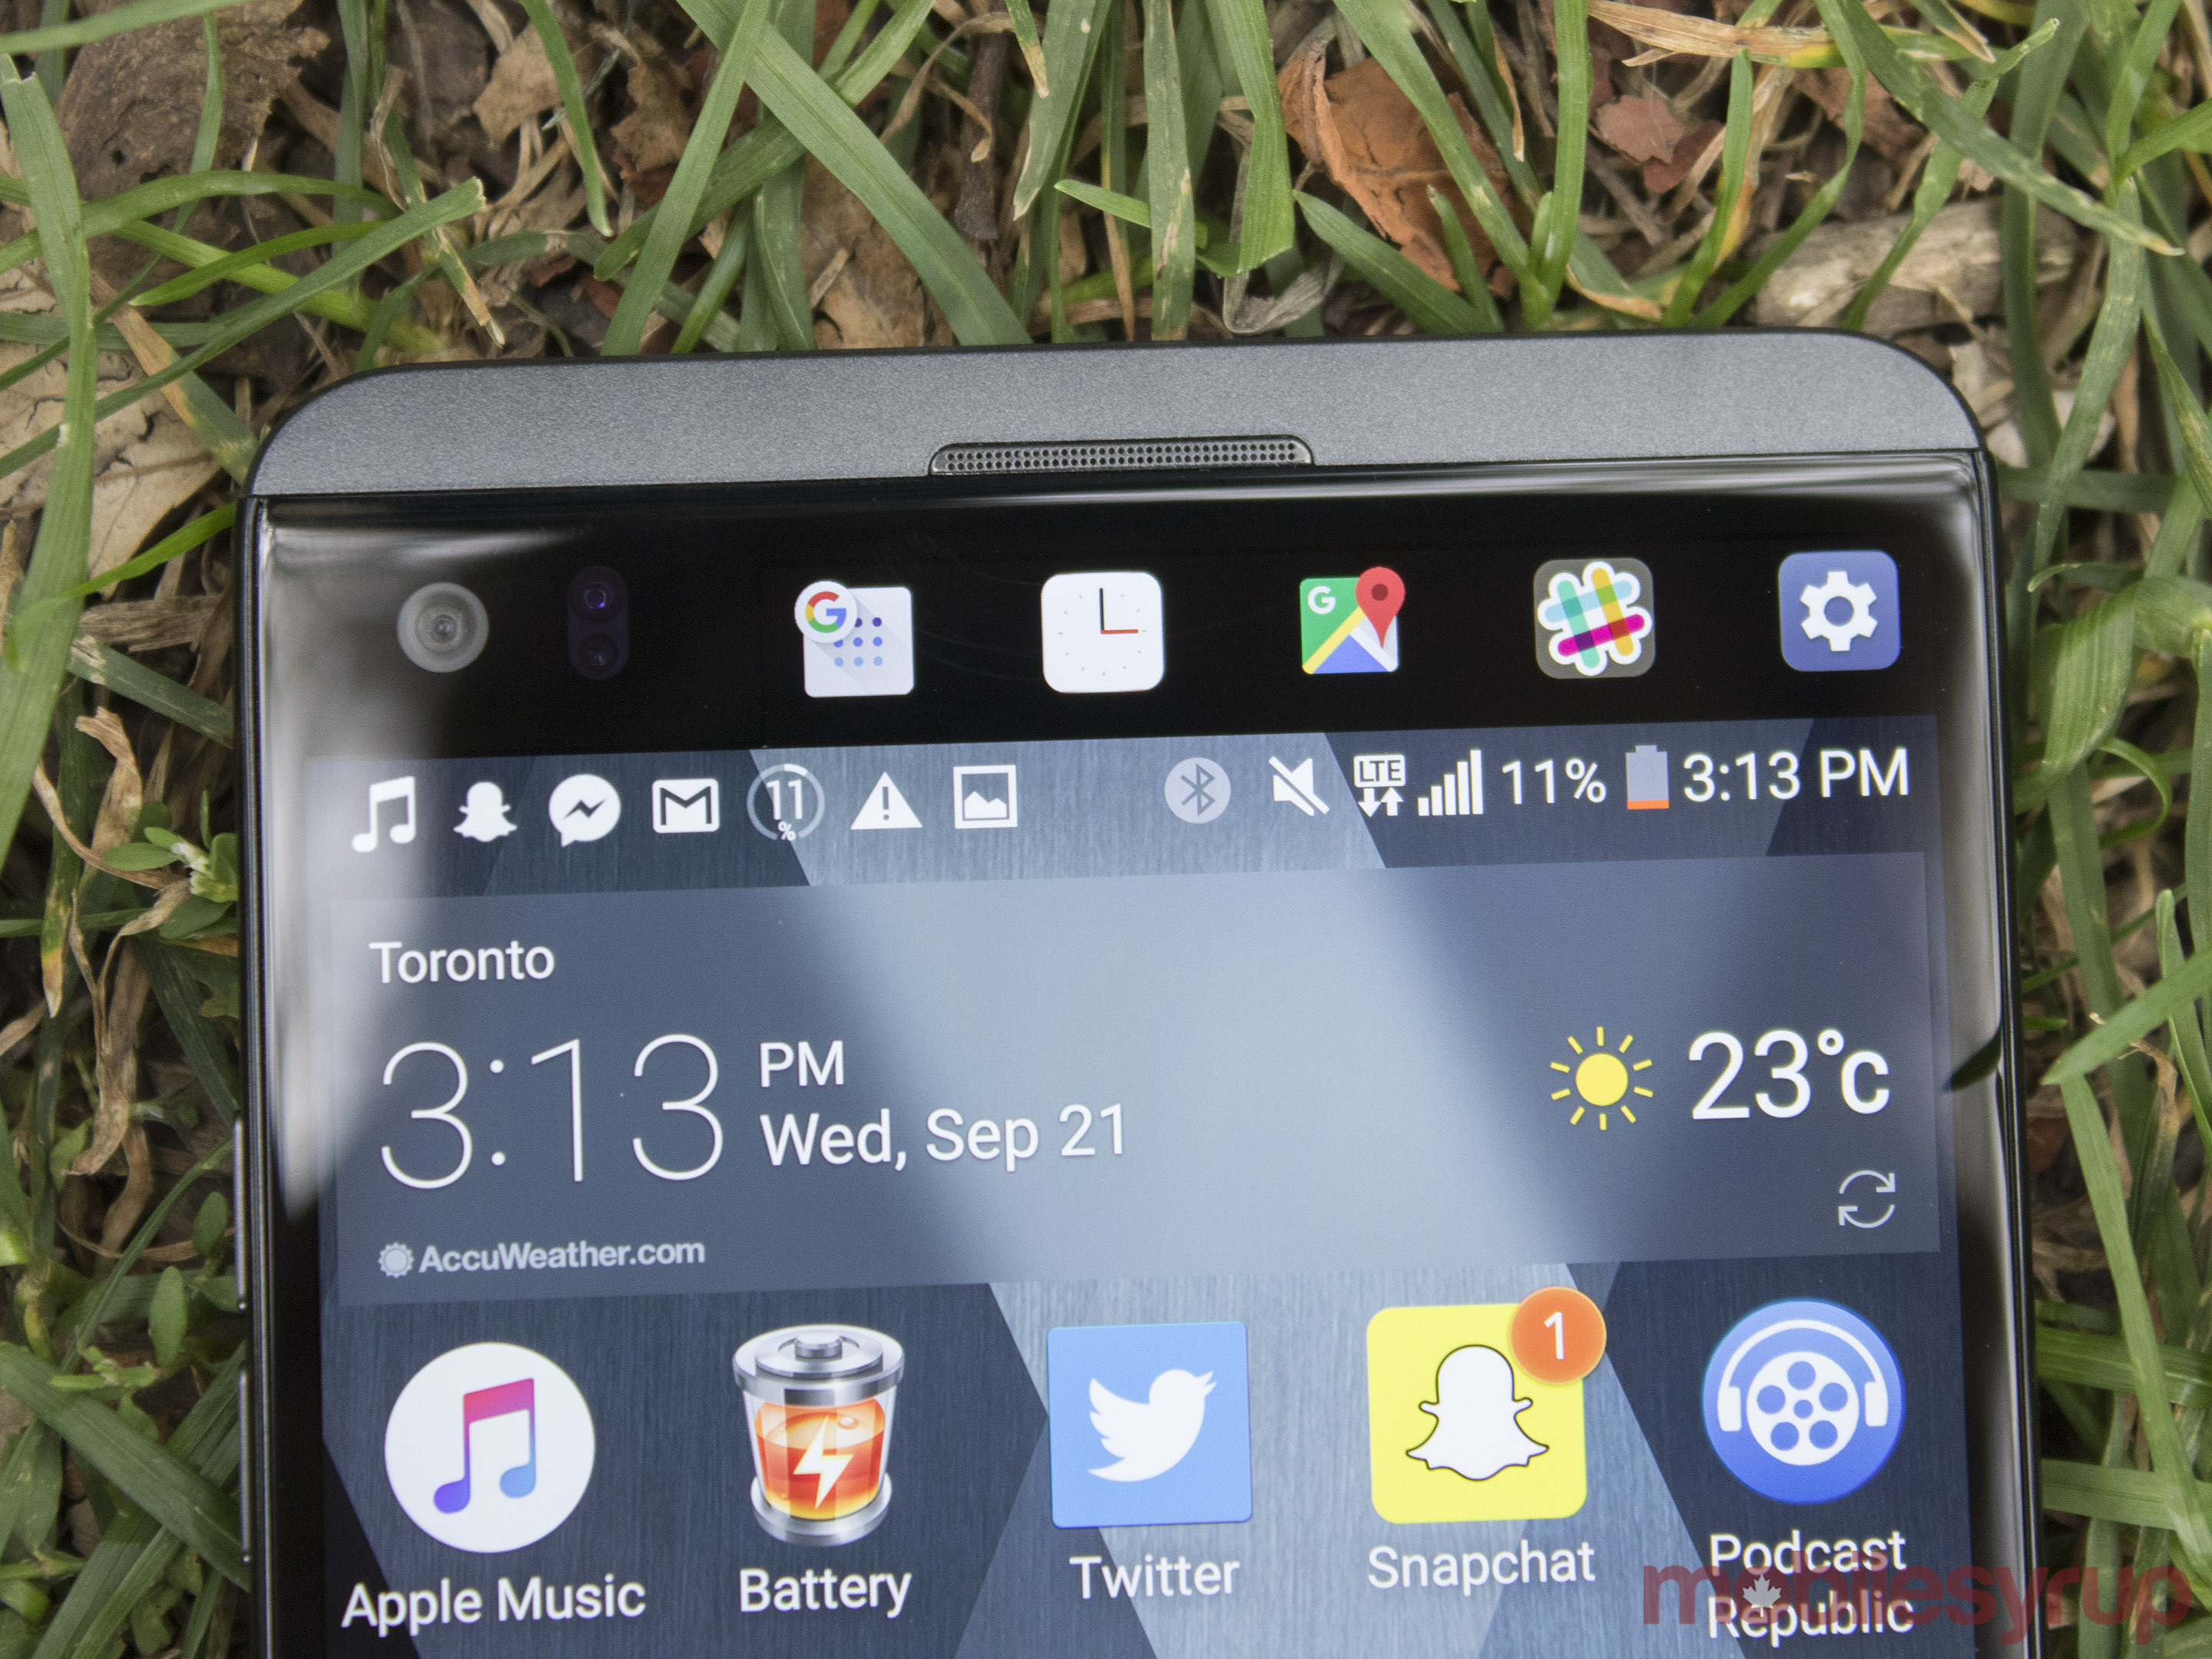 LG V20 review: Inconsistent greatness | MobileSyrup